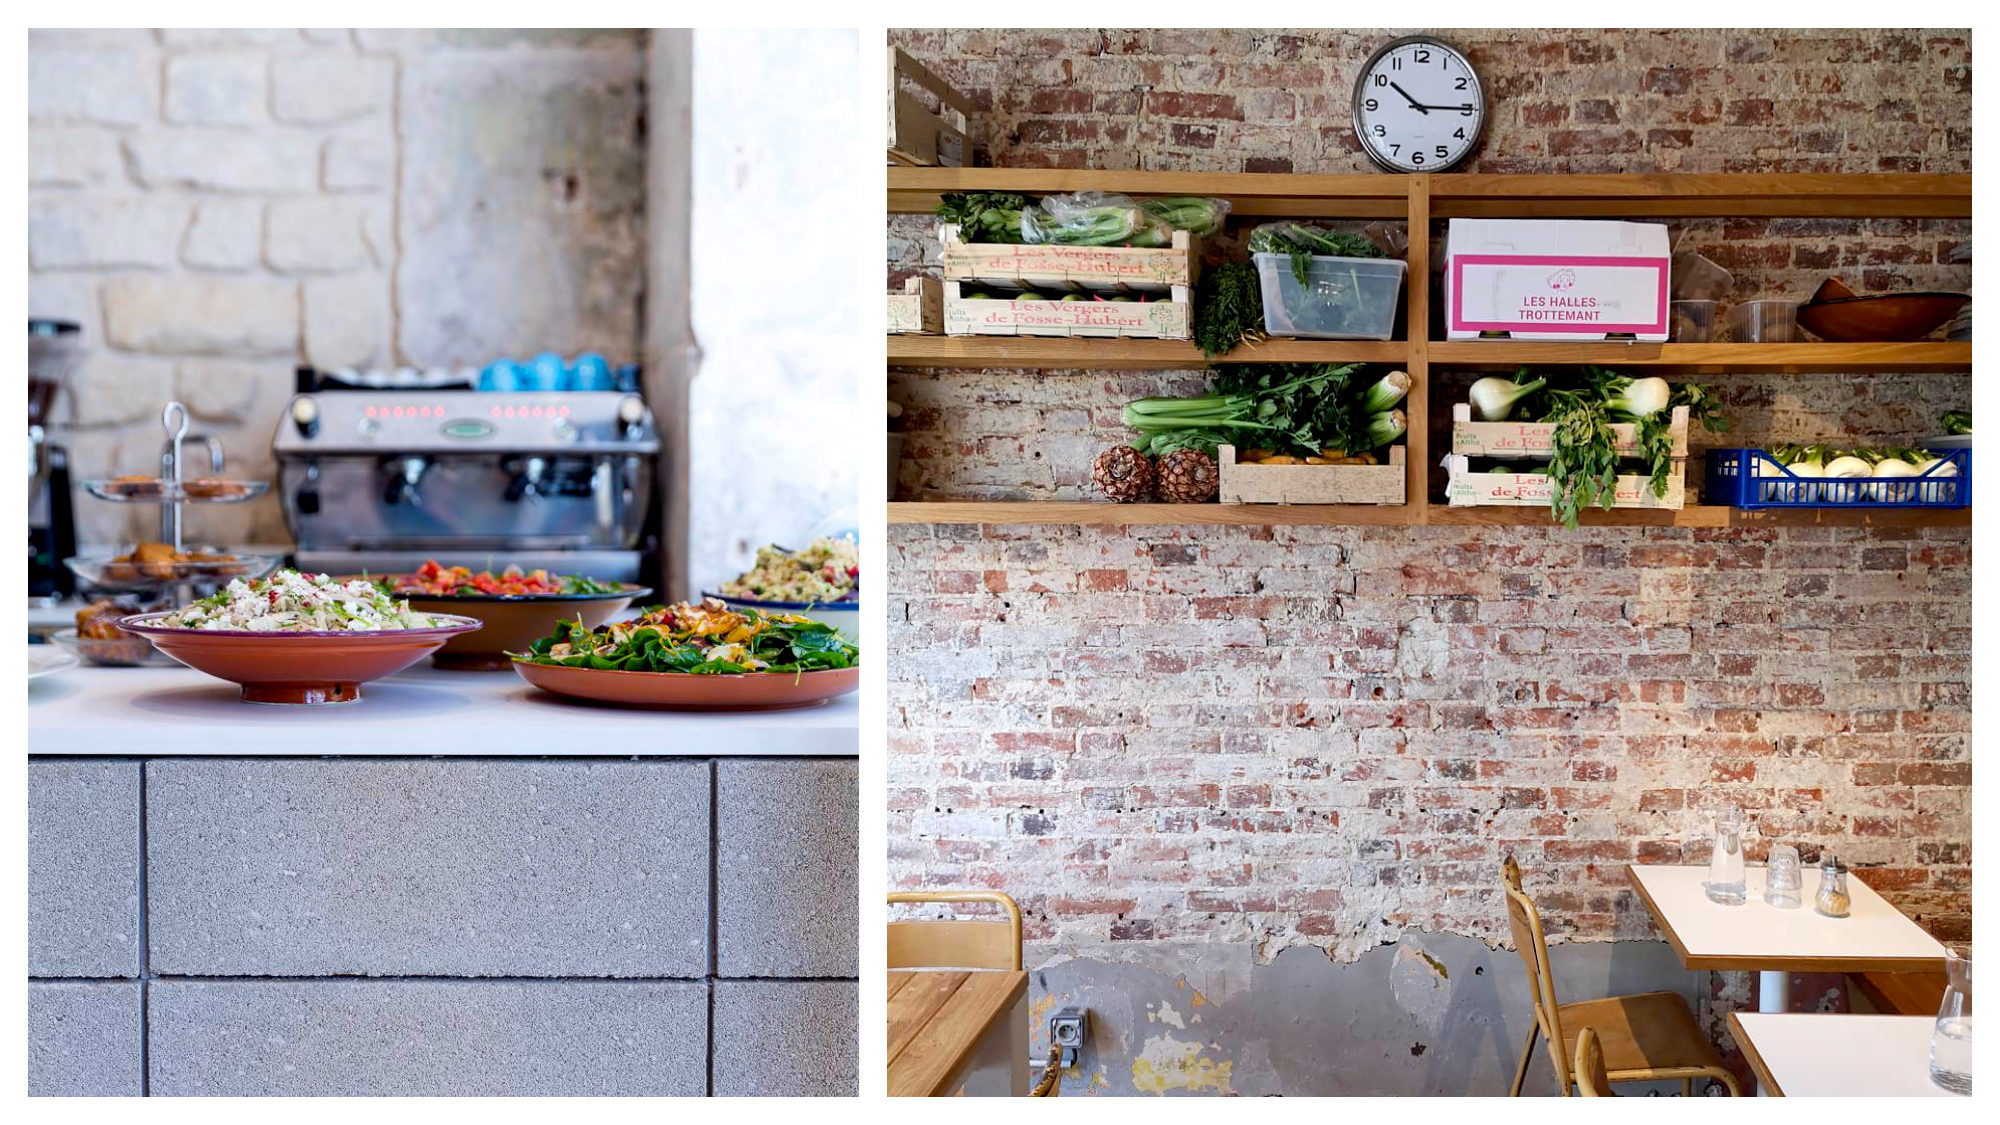 Big bowls of salads on the counter of IMA, a veggie café in Paris (left) and its exposed-brick interiors lined with crates of fresh produce on wooden shelves (right).